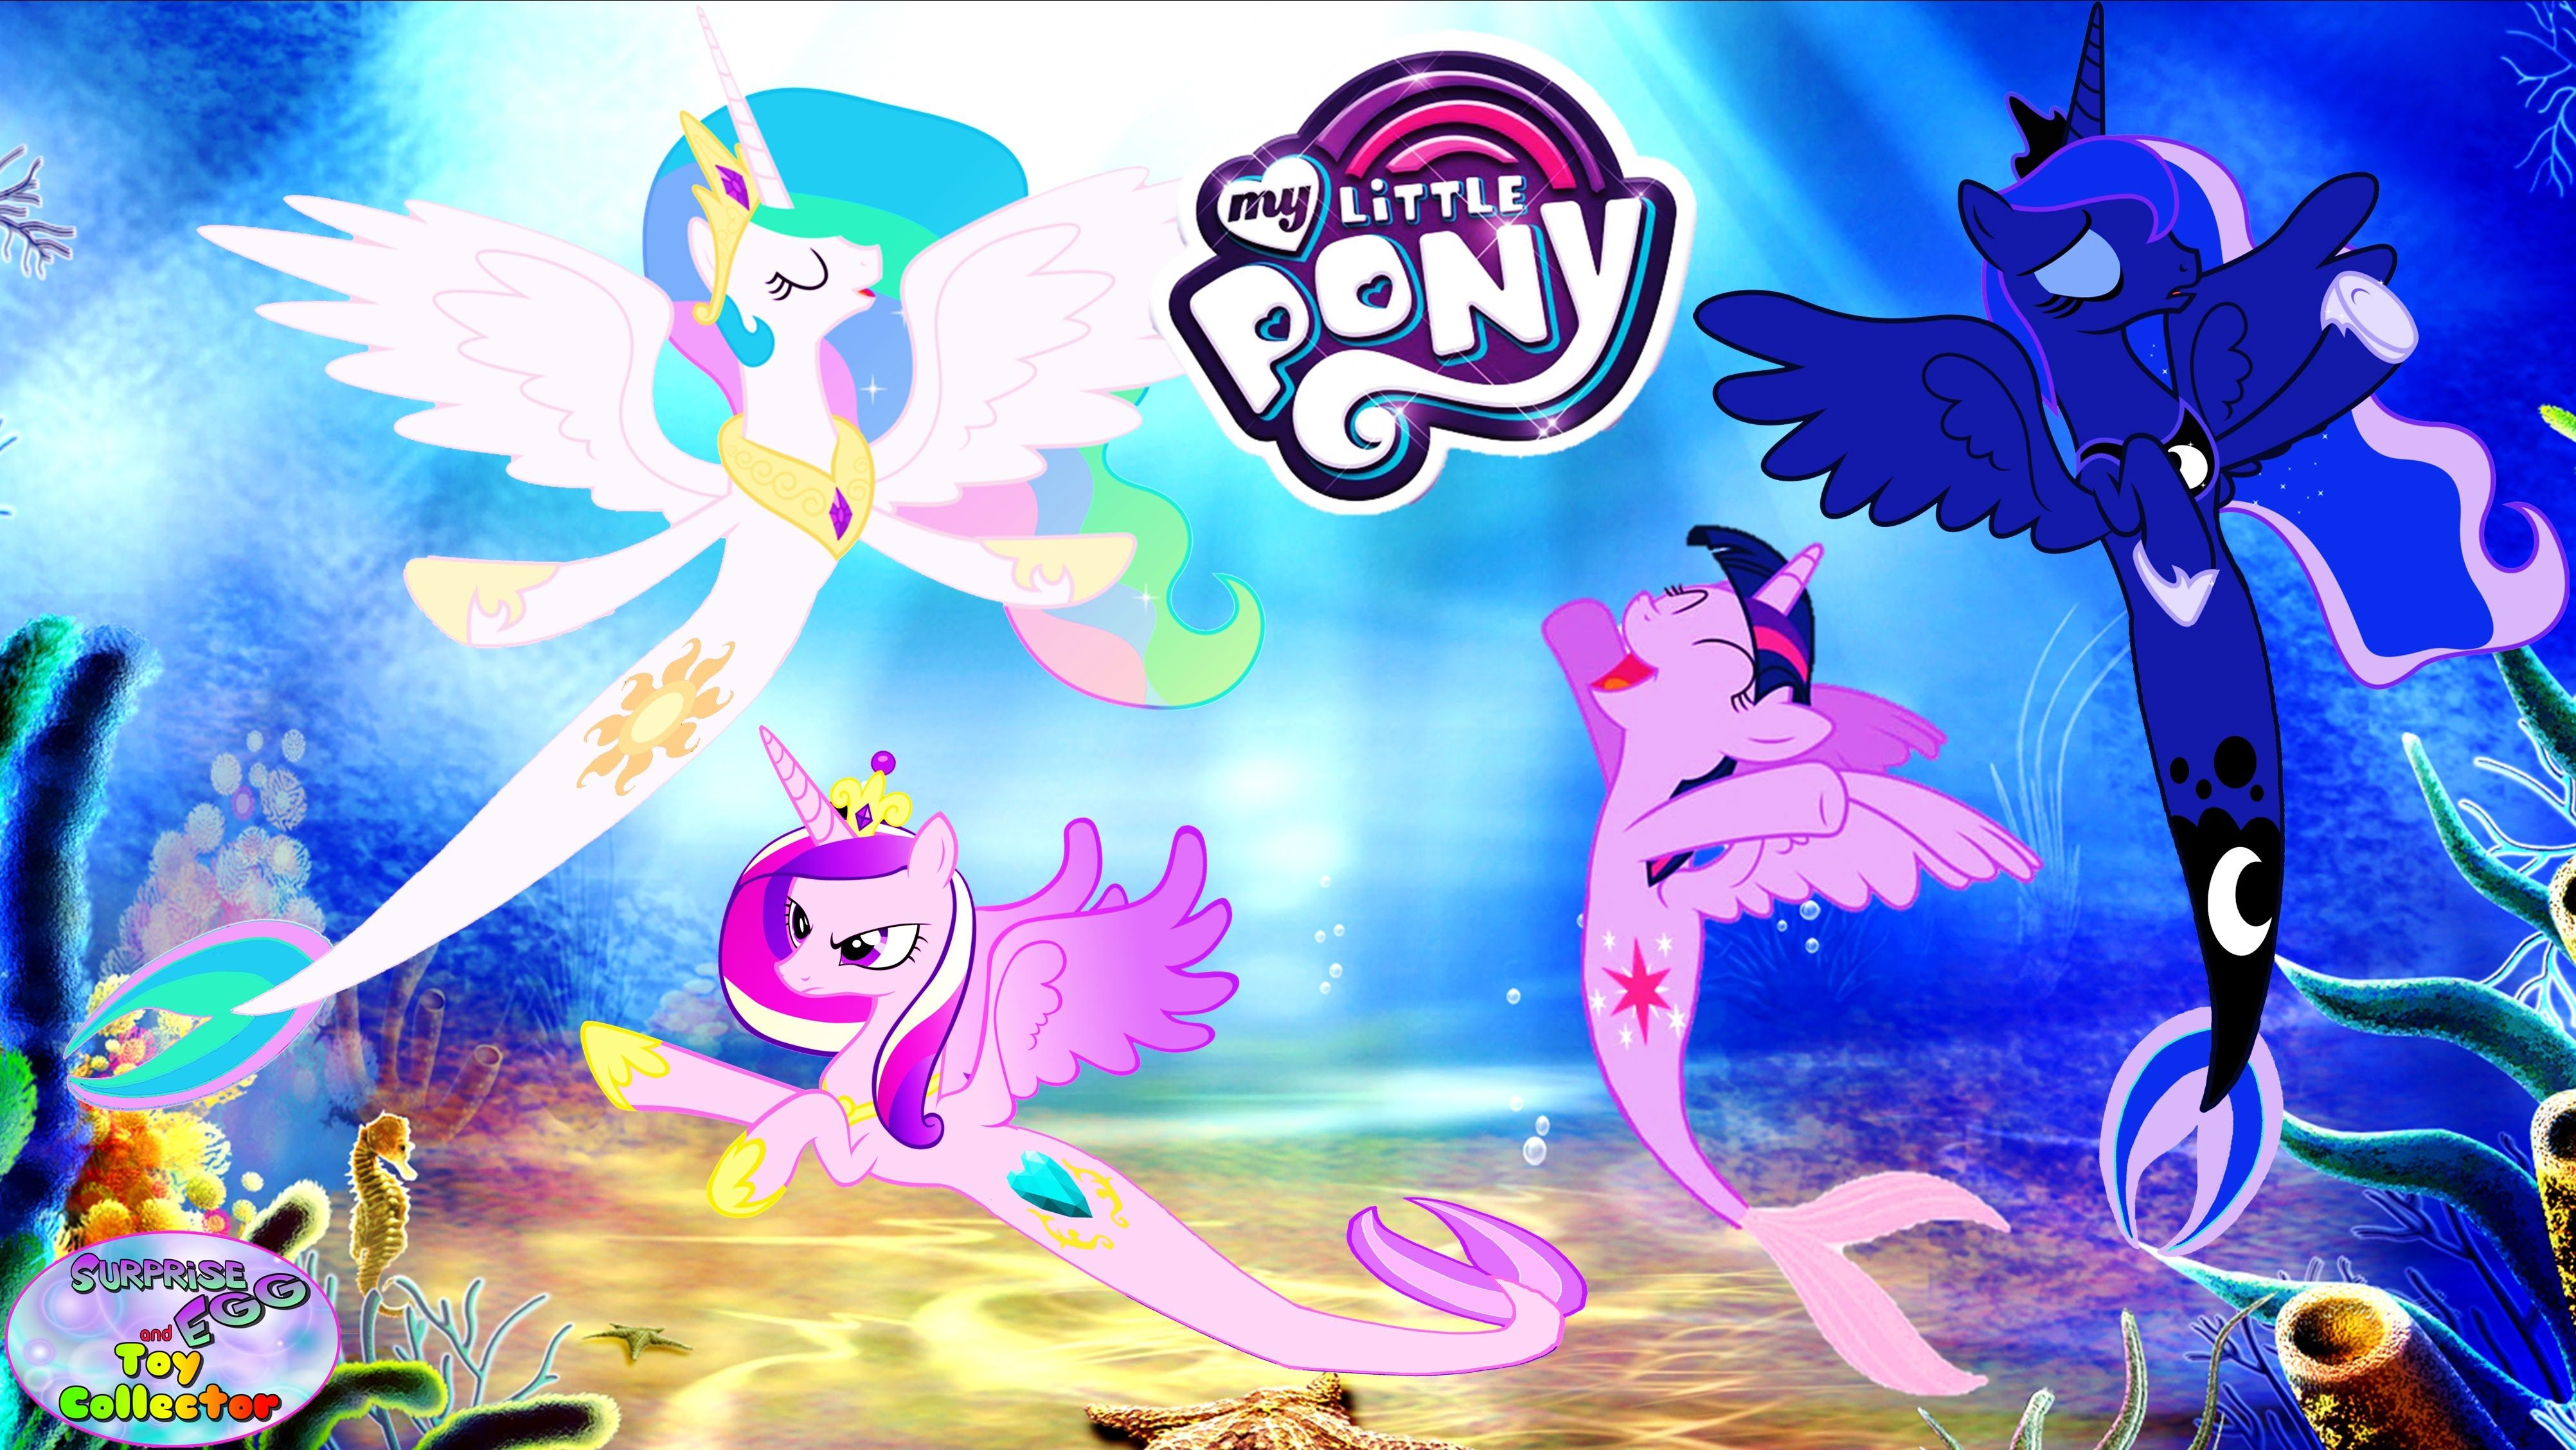 My Little Pony Princesses Transforms Into Princess Mermaids Surprise Egg In 2020 My Little Pony Princess My Little Pony Little Pony